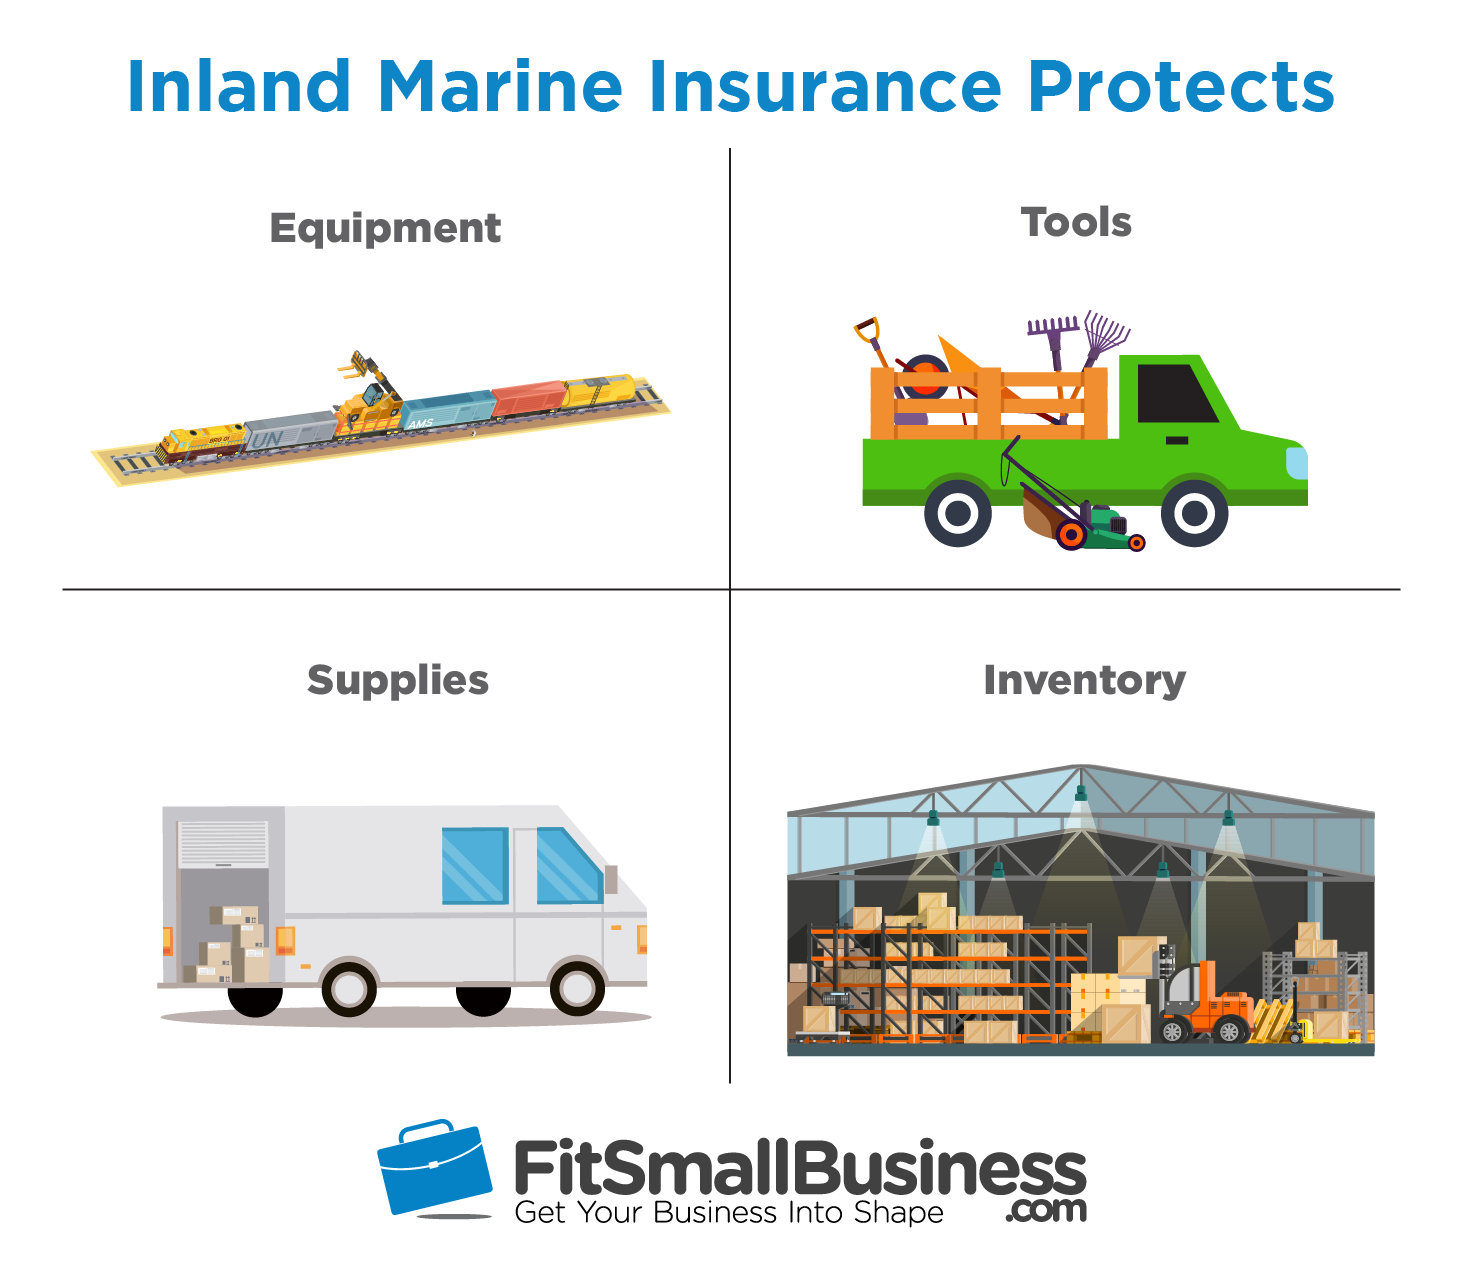 Infographic showing types of things insured by inland marine insurance